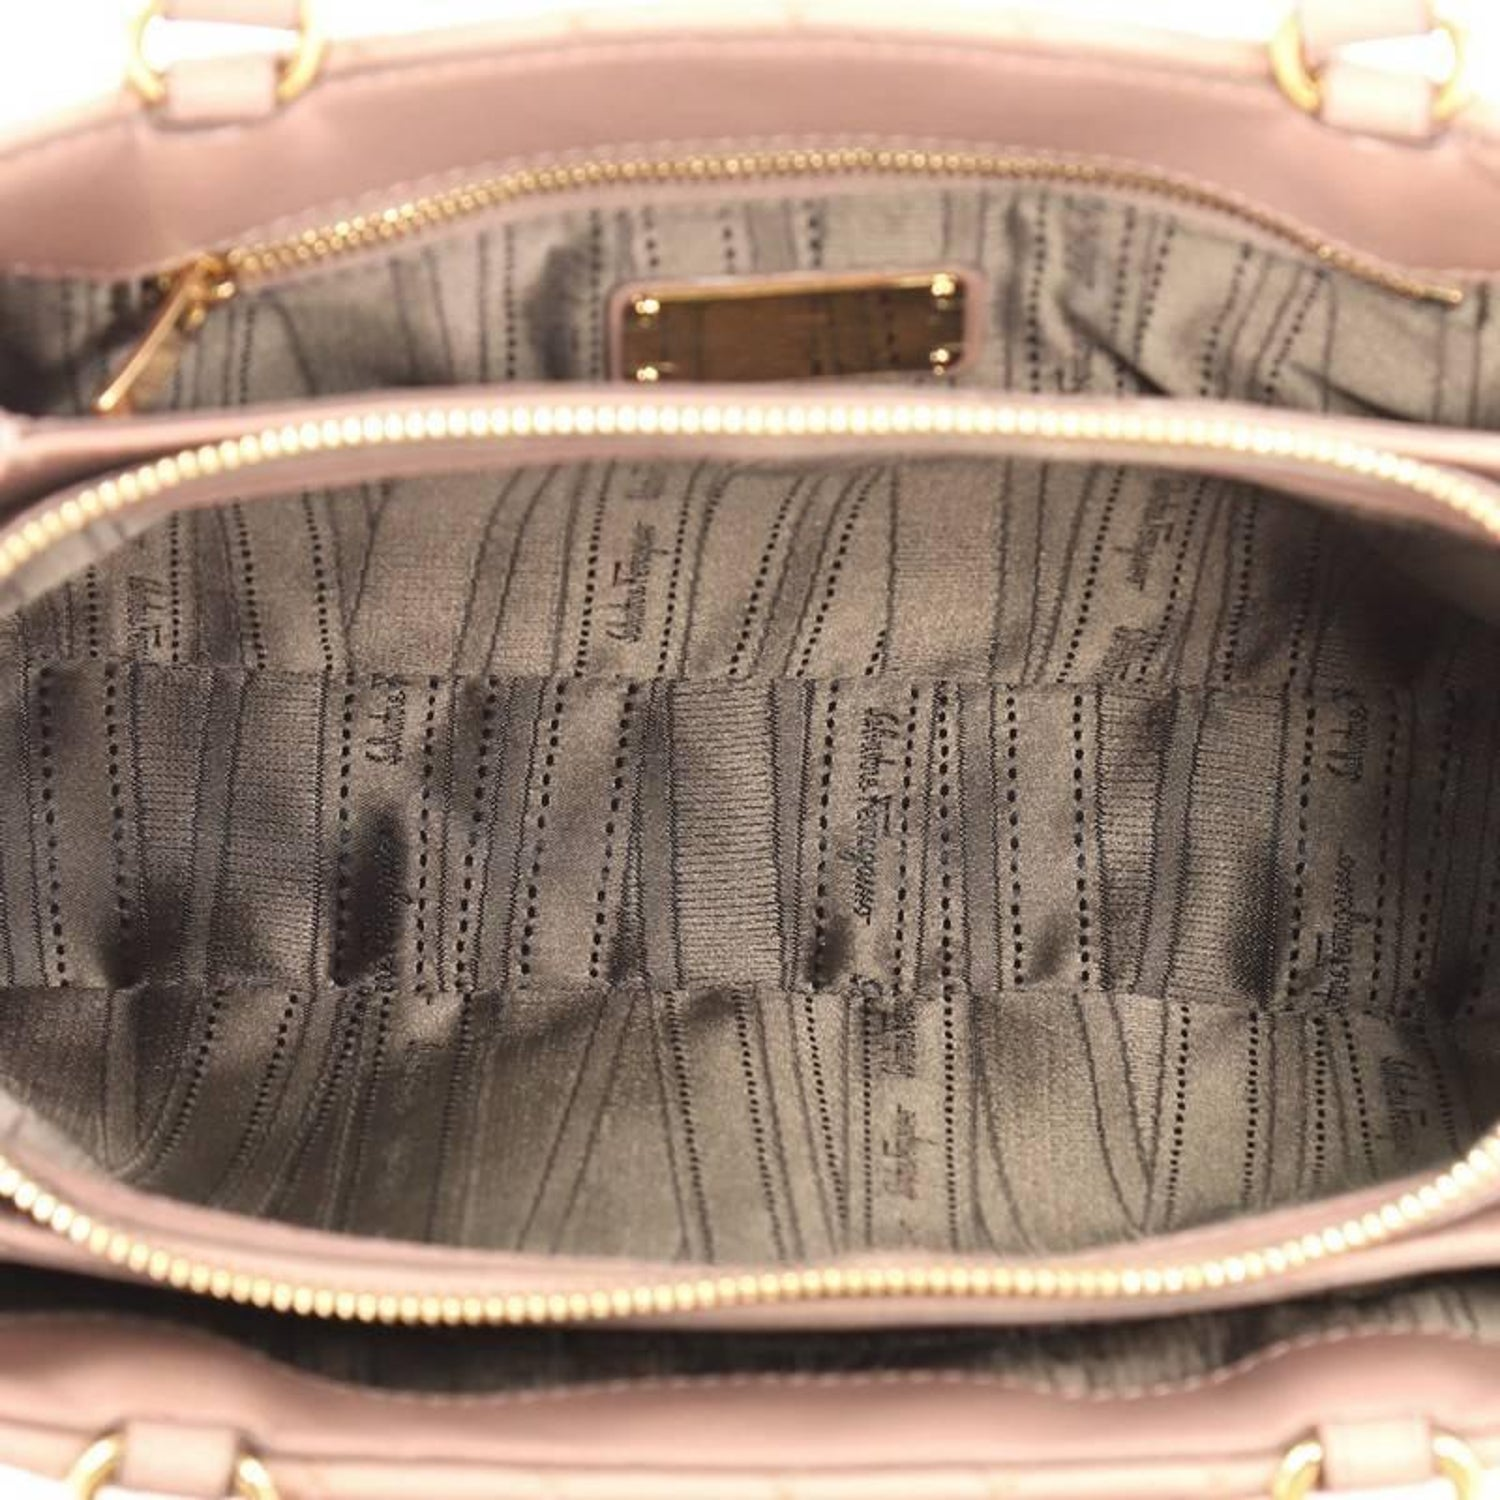 ac2eecb8a0 Salvatore Ferragamo Tracy Handbag Quilted Leather at 1stdibs